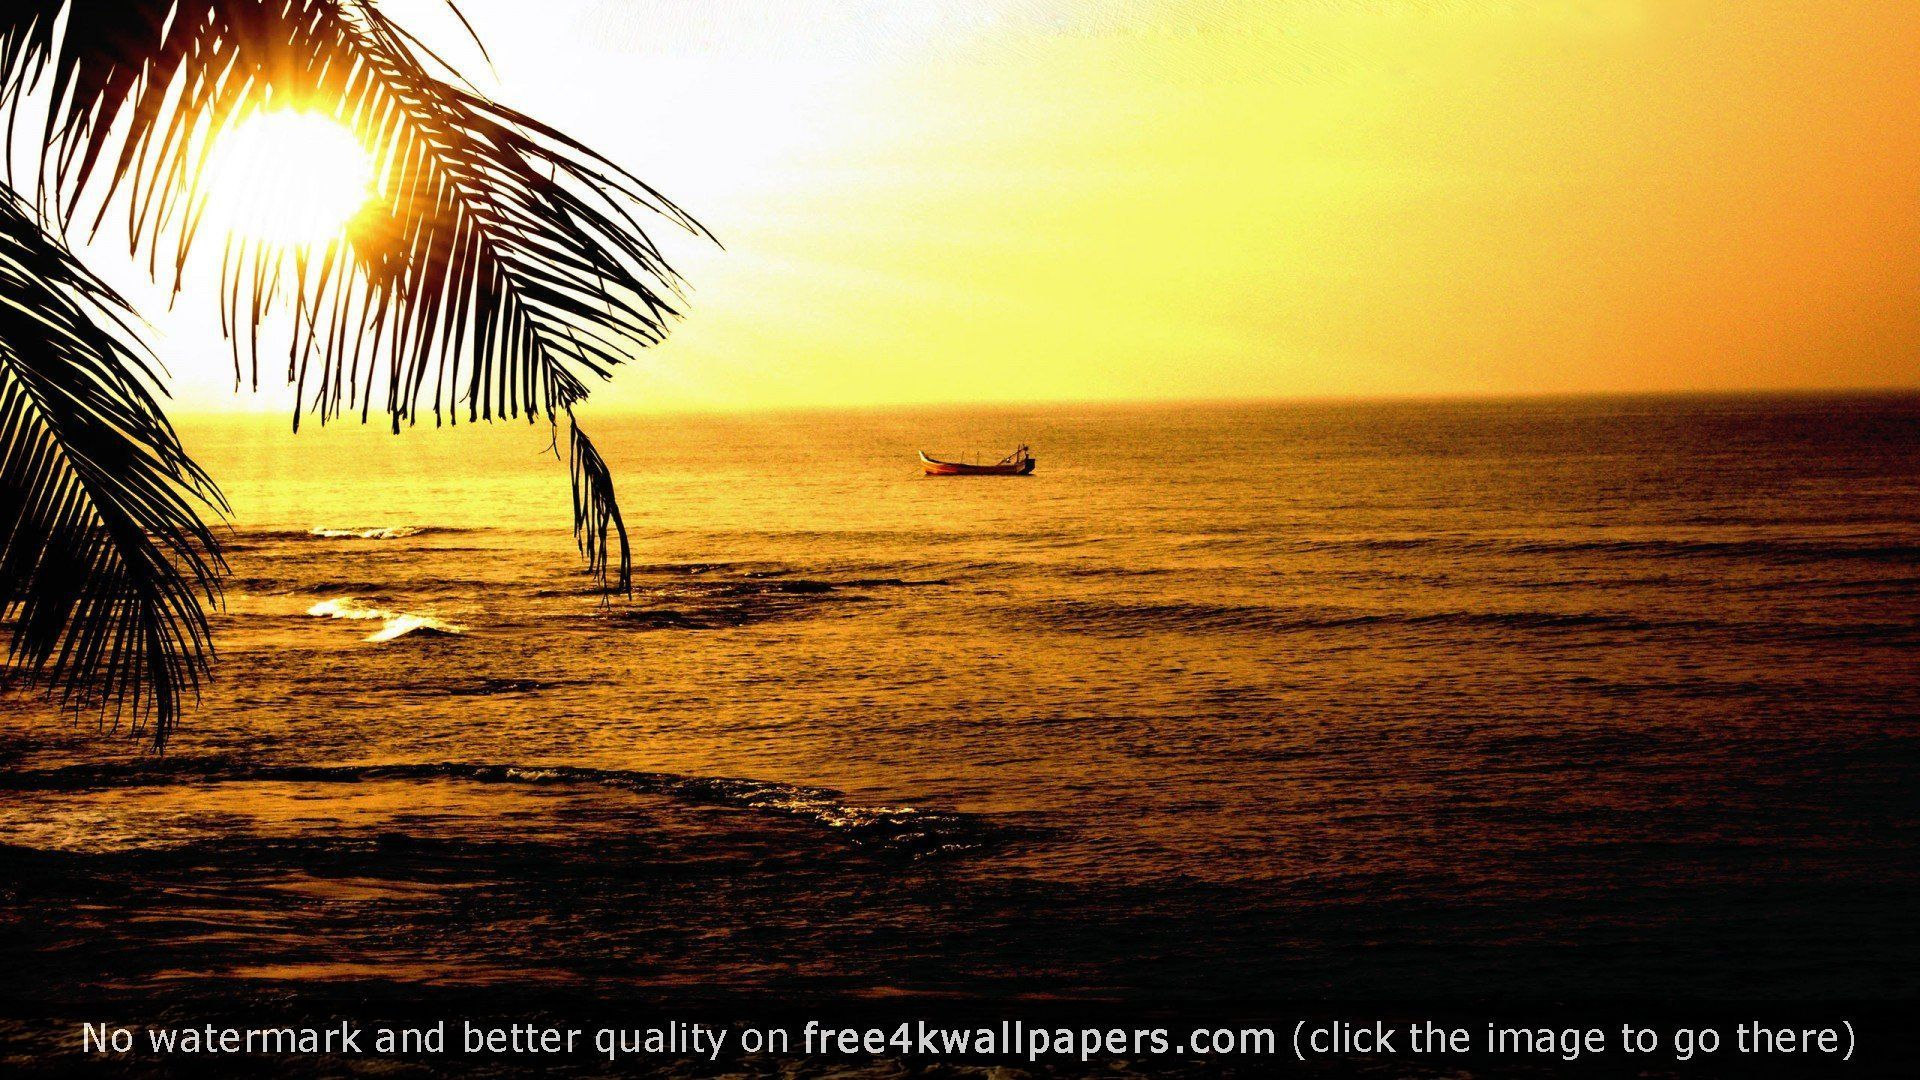 Sunset 4k Wallpapers For Your Desktop Or Mobile Screen Free And Easy To Download Beach Sunset Wallpaper Sunset Wallpaper Ocean Sunset